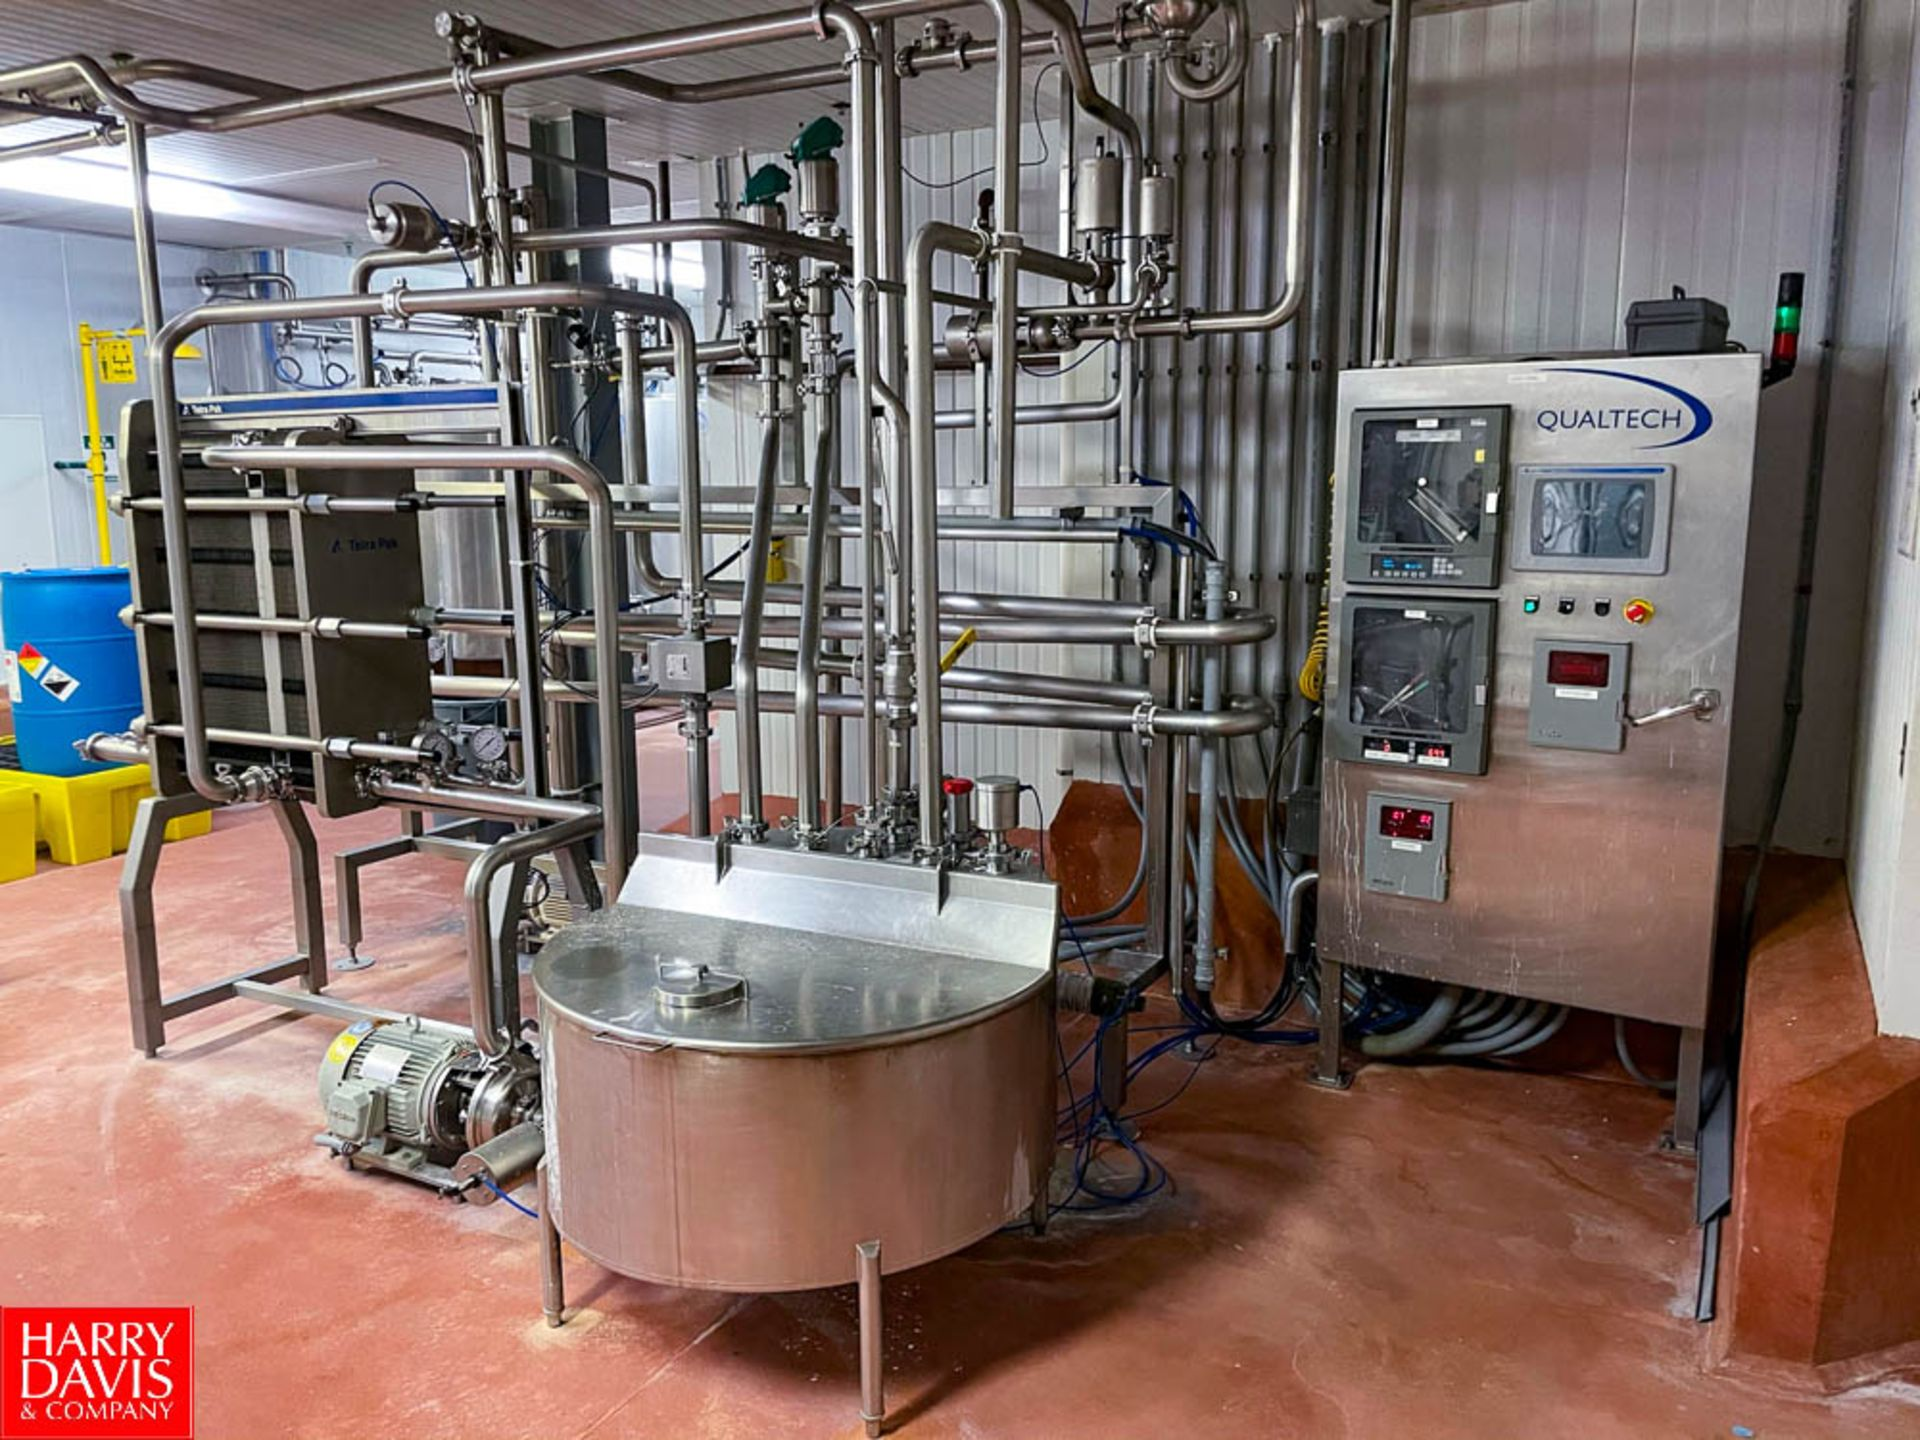 2008 Tetra Pak 36 GPM Pasteurizer Including Tetra Pak 3-Zone S/S Frame Plate Heat Exchanger, S/S - Image 2 of 6